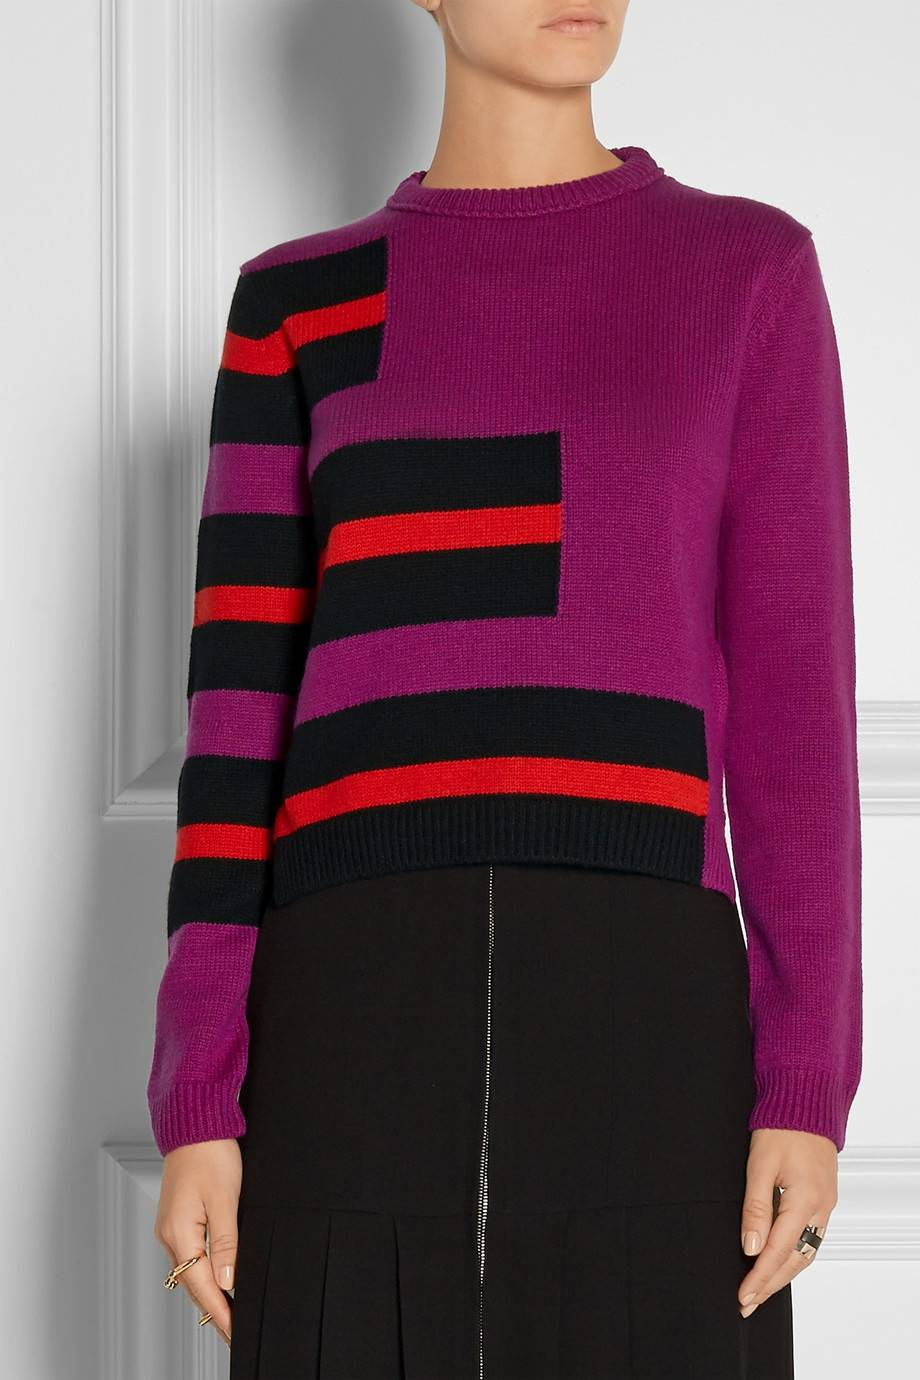 Fashional Lady Stripe Pattern cashmere sweater Jumper Pullover